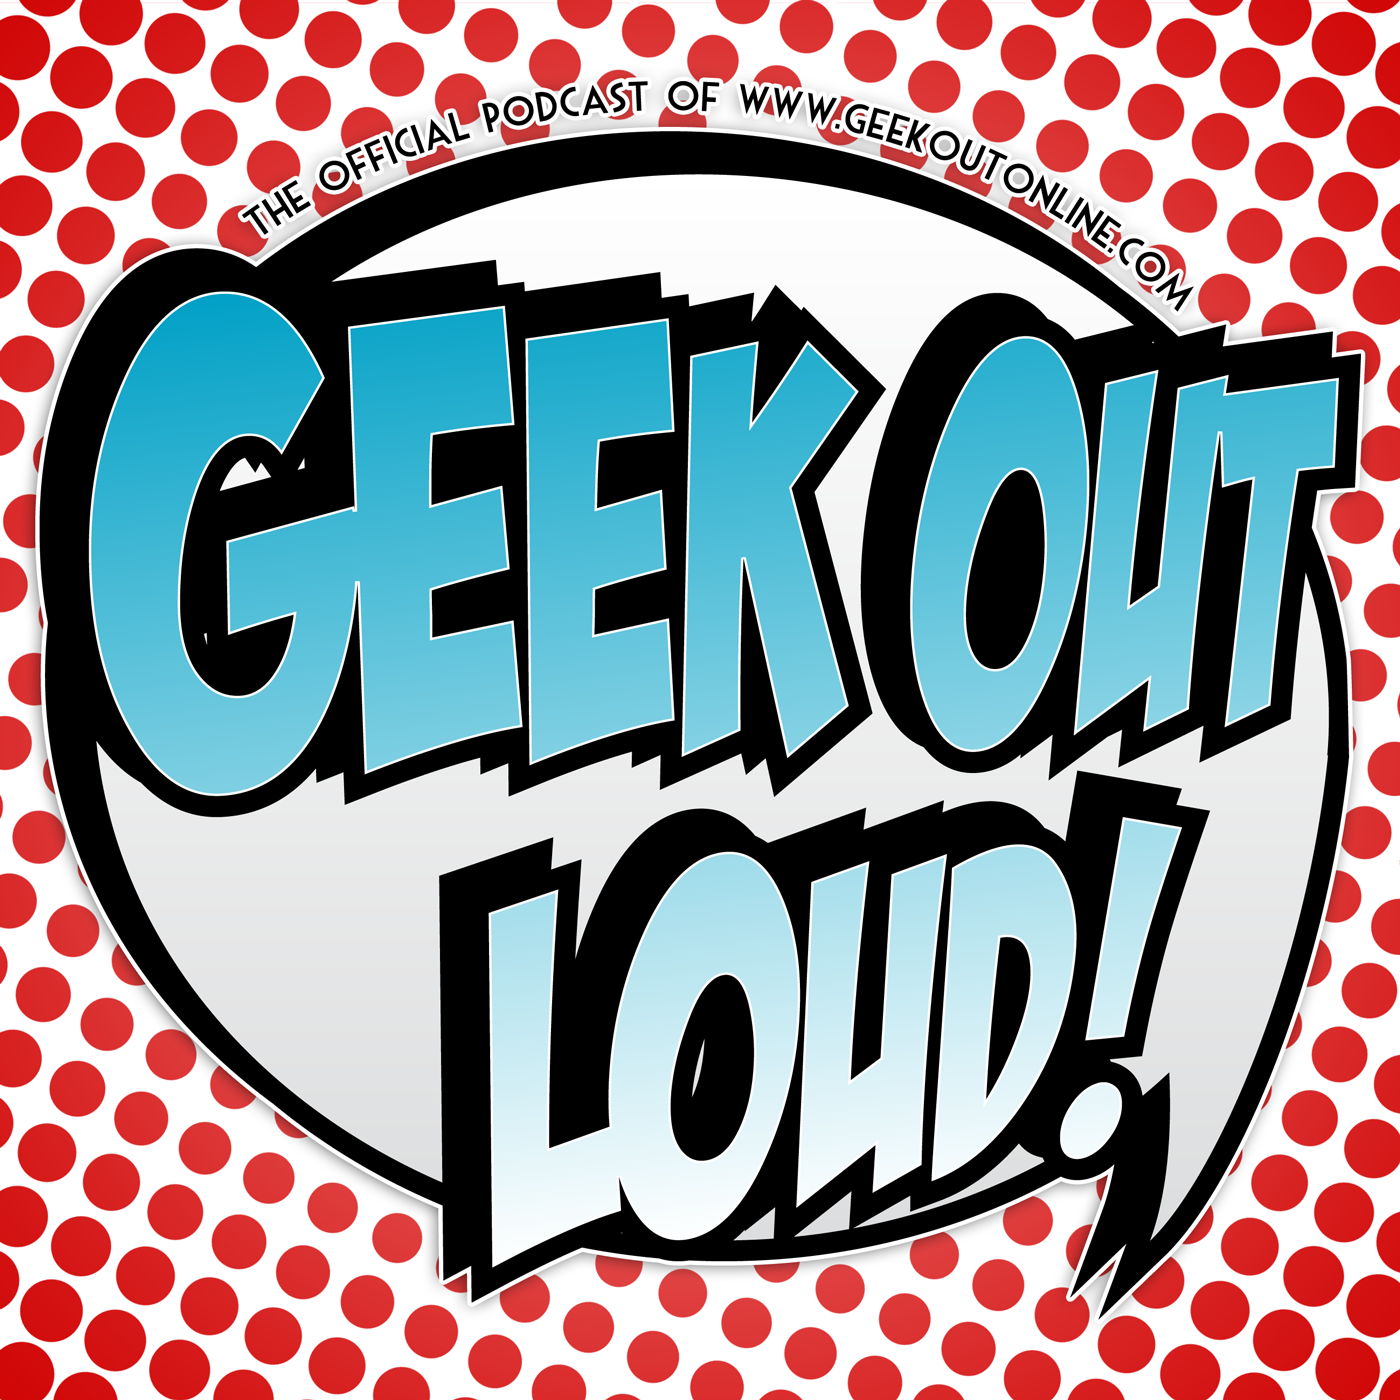 Geek Out Loud – Geek Out Loud